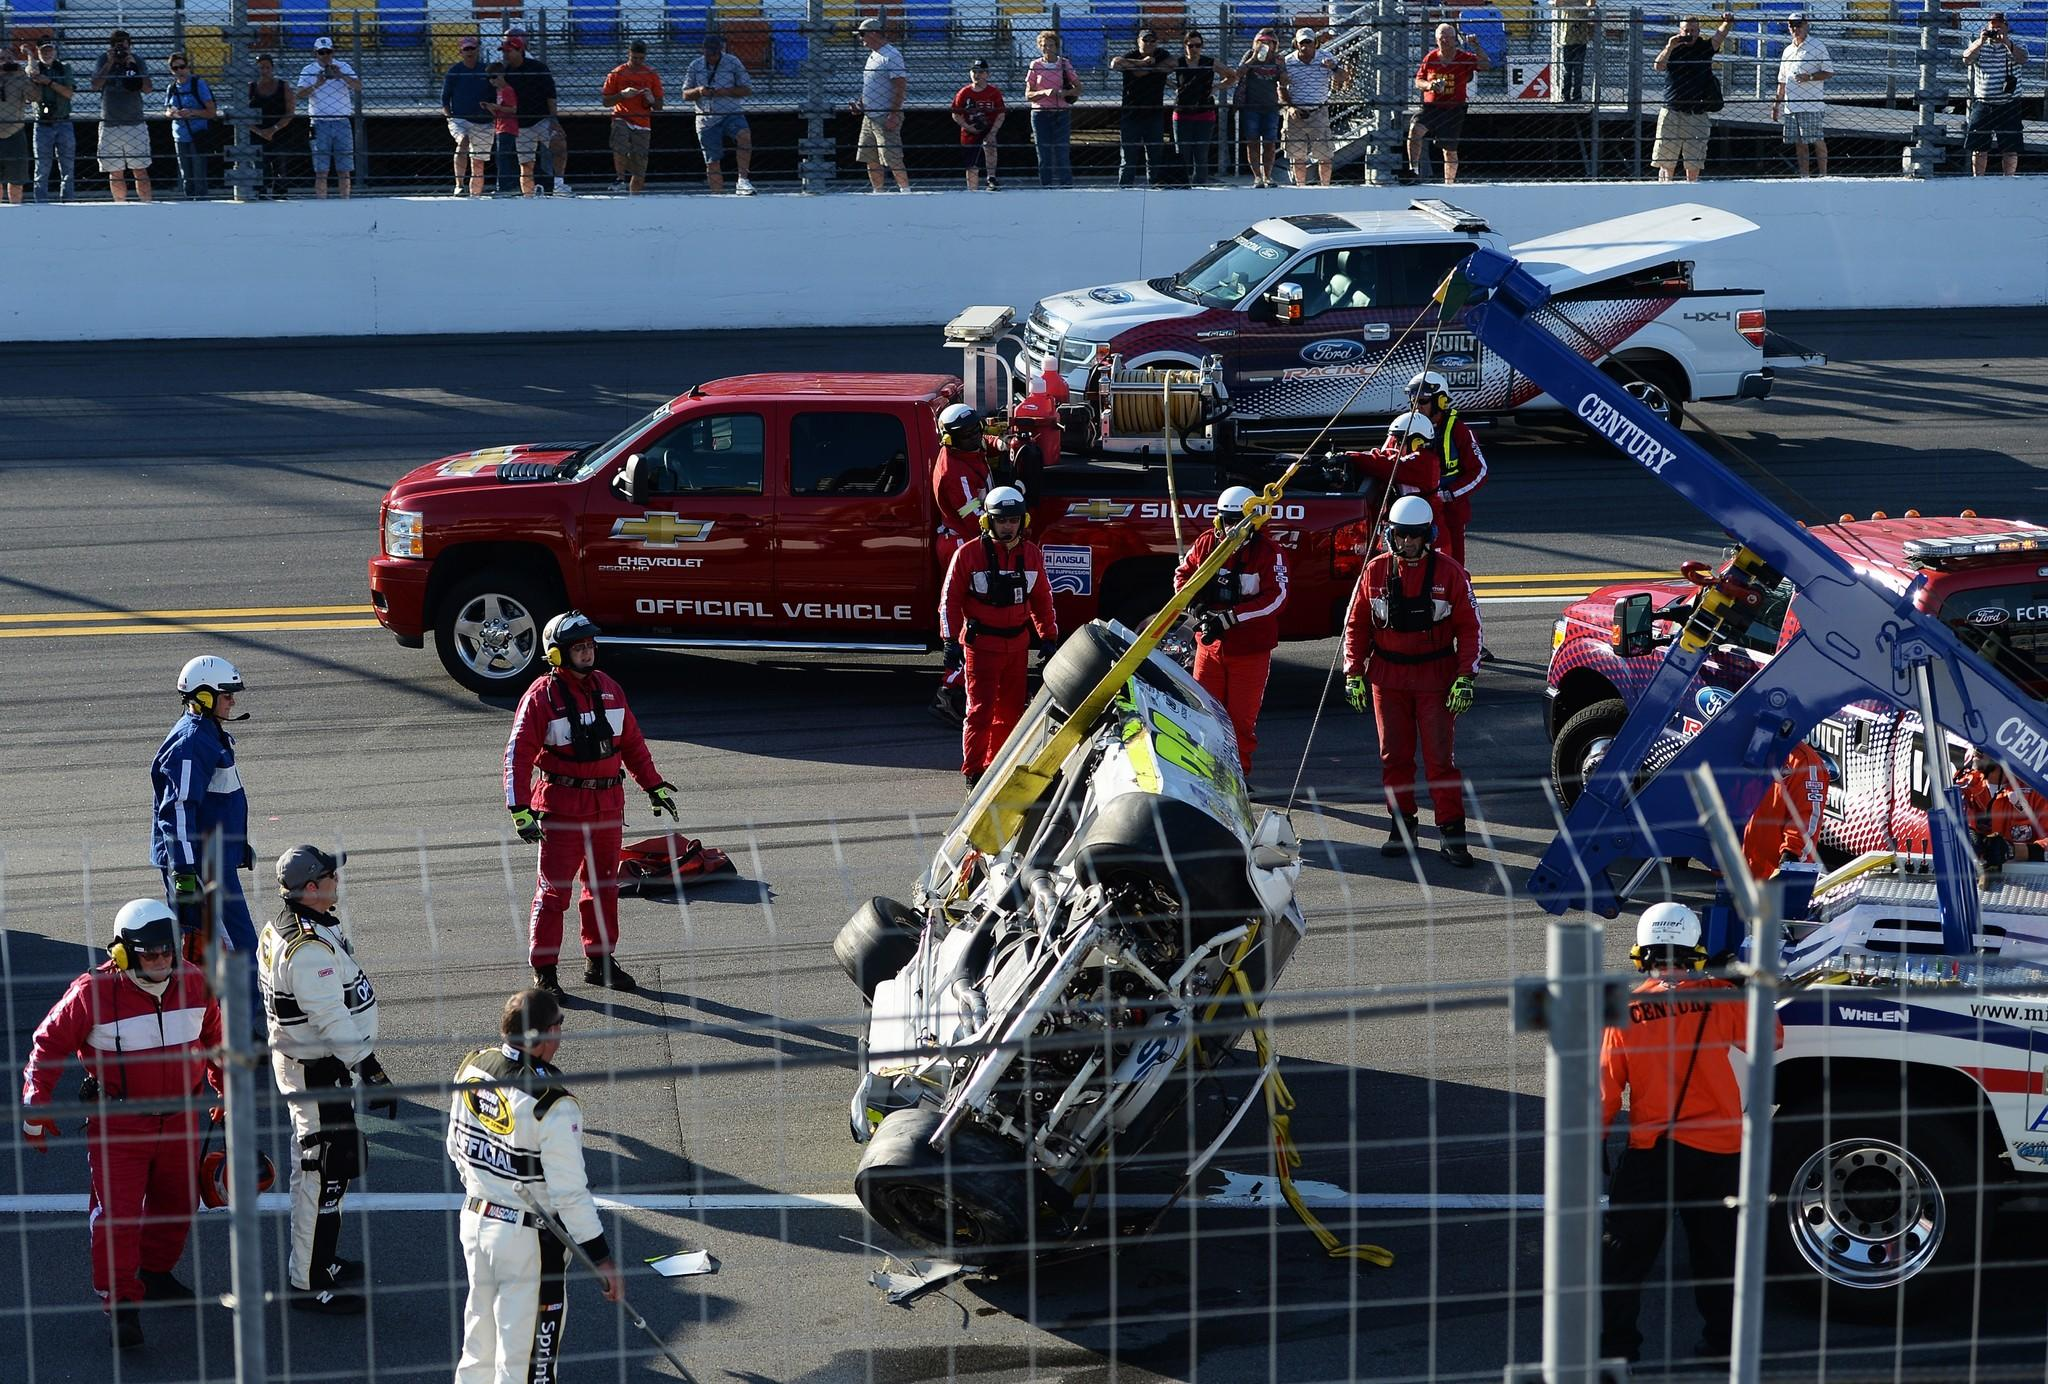 Parker Kligerman's No. 30 Swan Energy Toyota is flipped back over by safety crew members Wednesday after an incident during practice for the NASCAR Sprint Cup Series Daytona 500 at Daytona International Speedway.